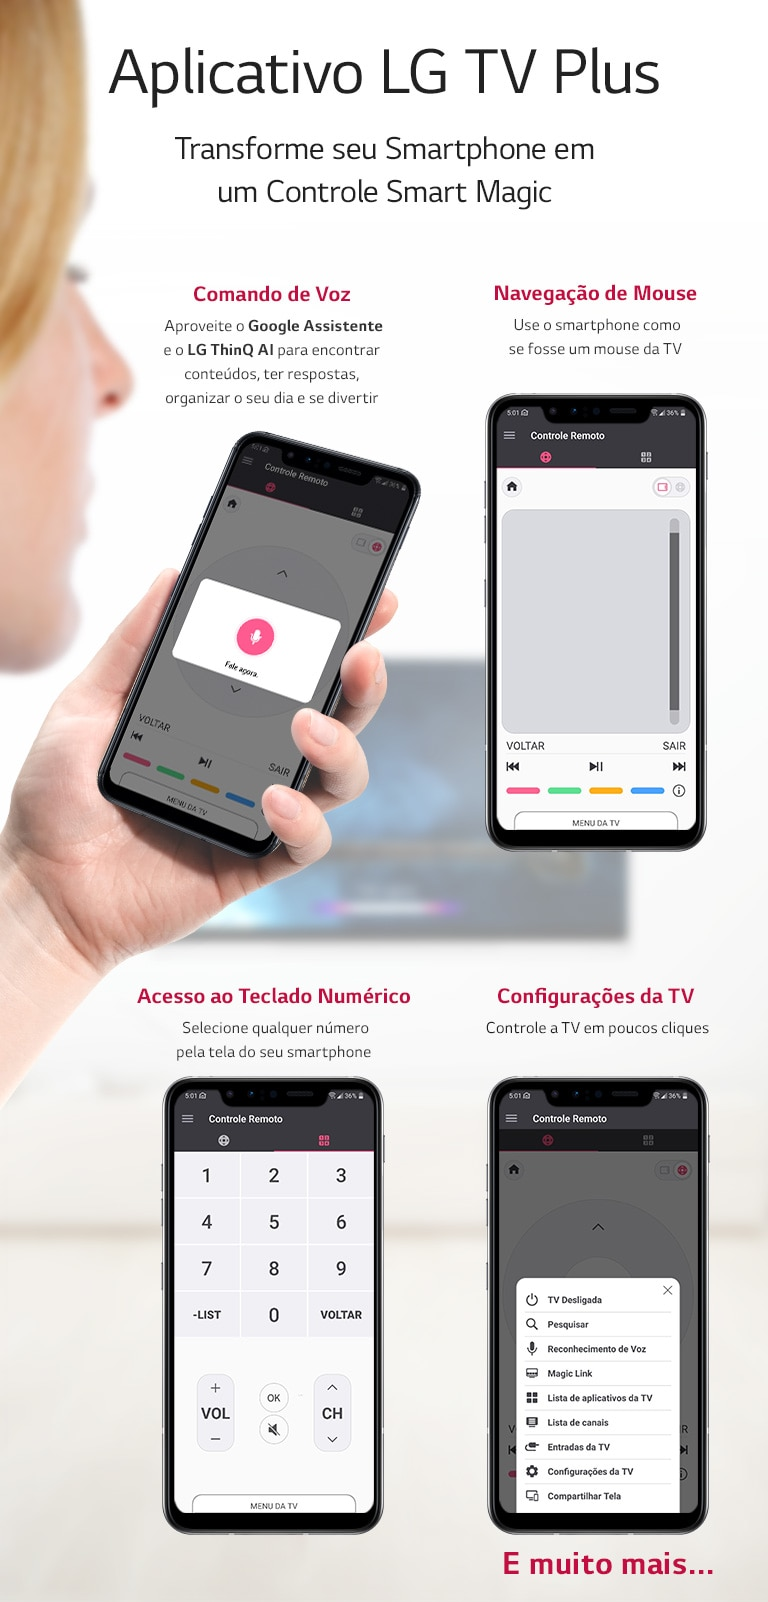 Feature-Card-App-LG-TV-Plus-Mobilie2-01